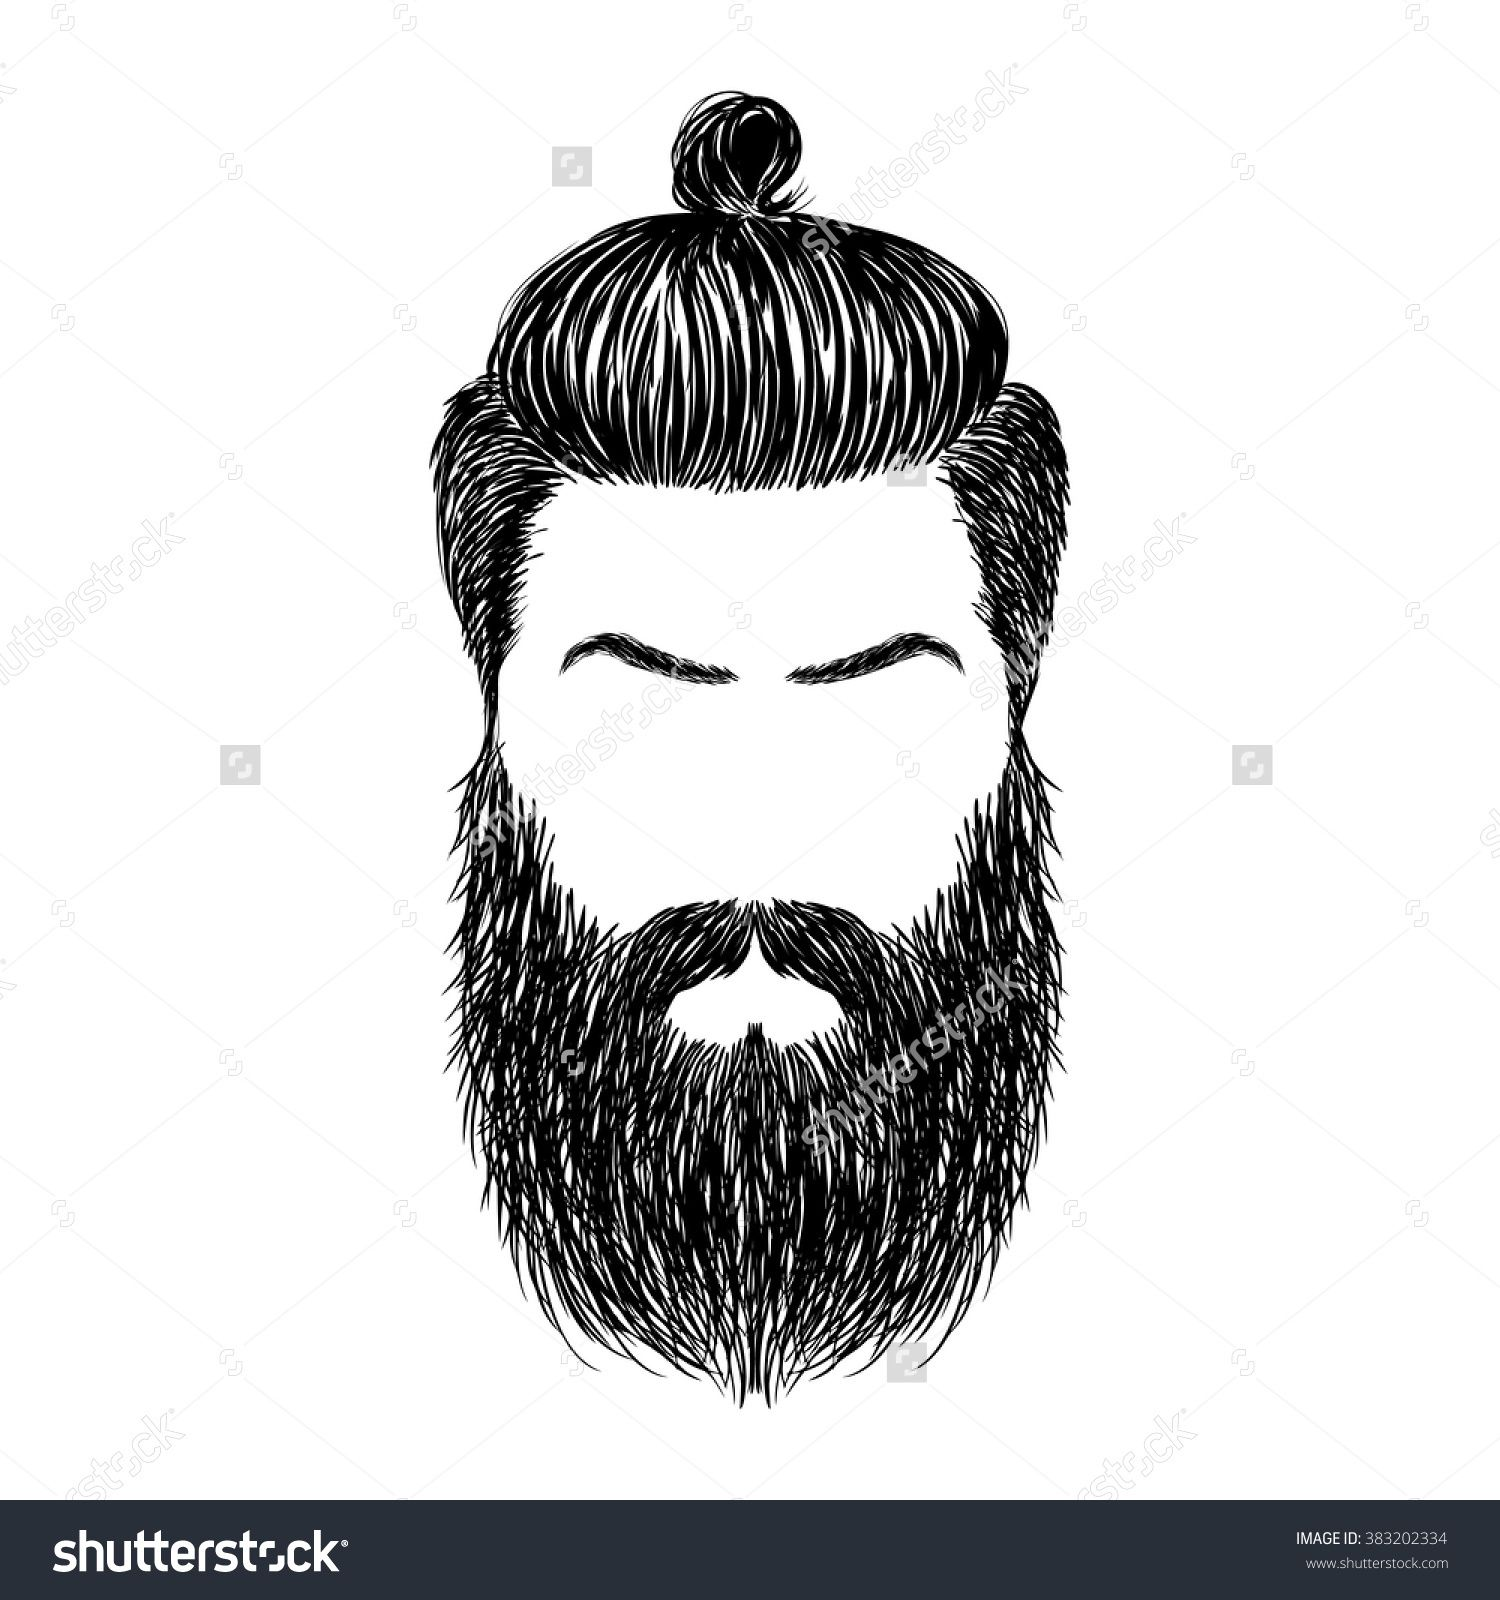 banner transparent Hand Drawn brutal hairstyles and beard